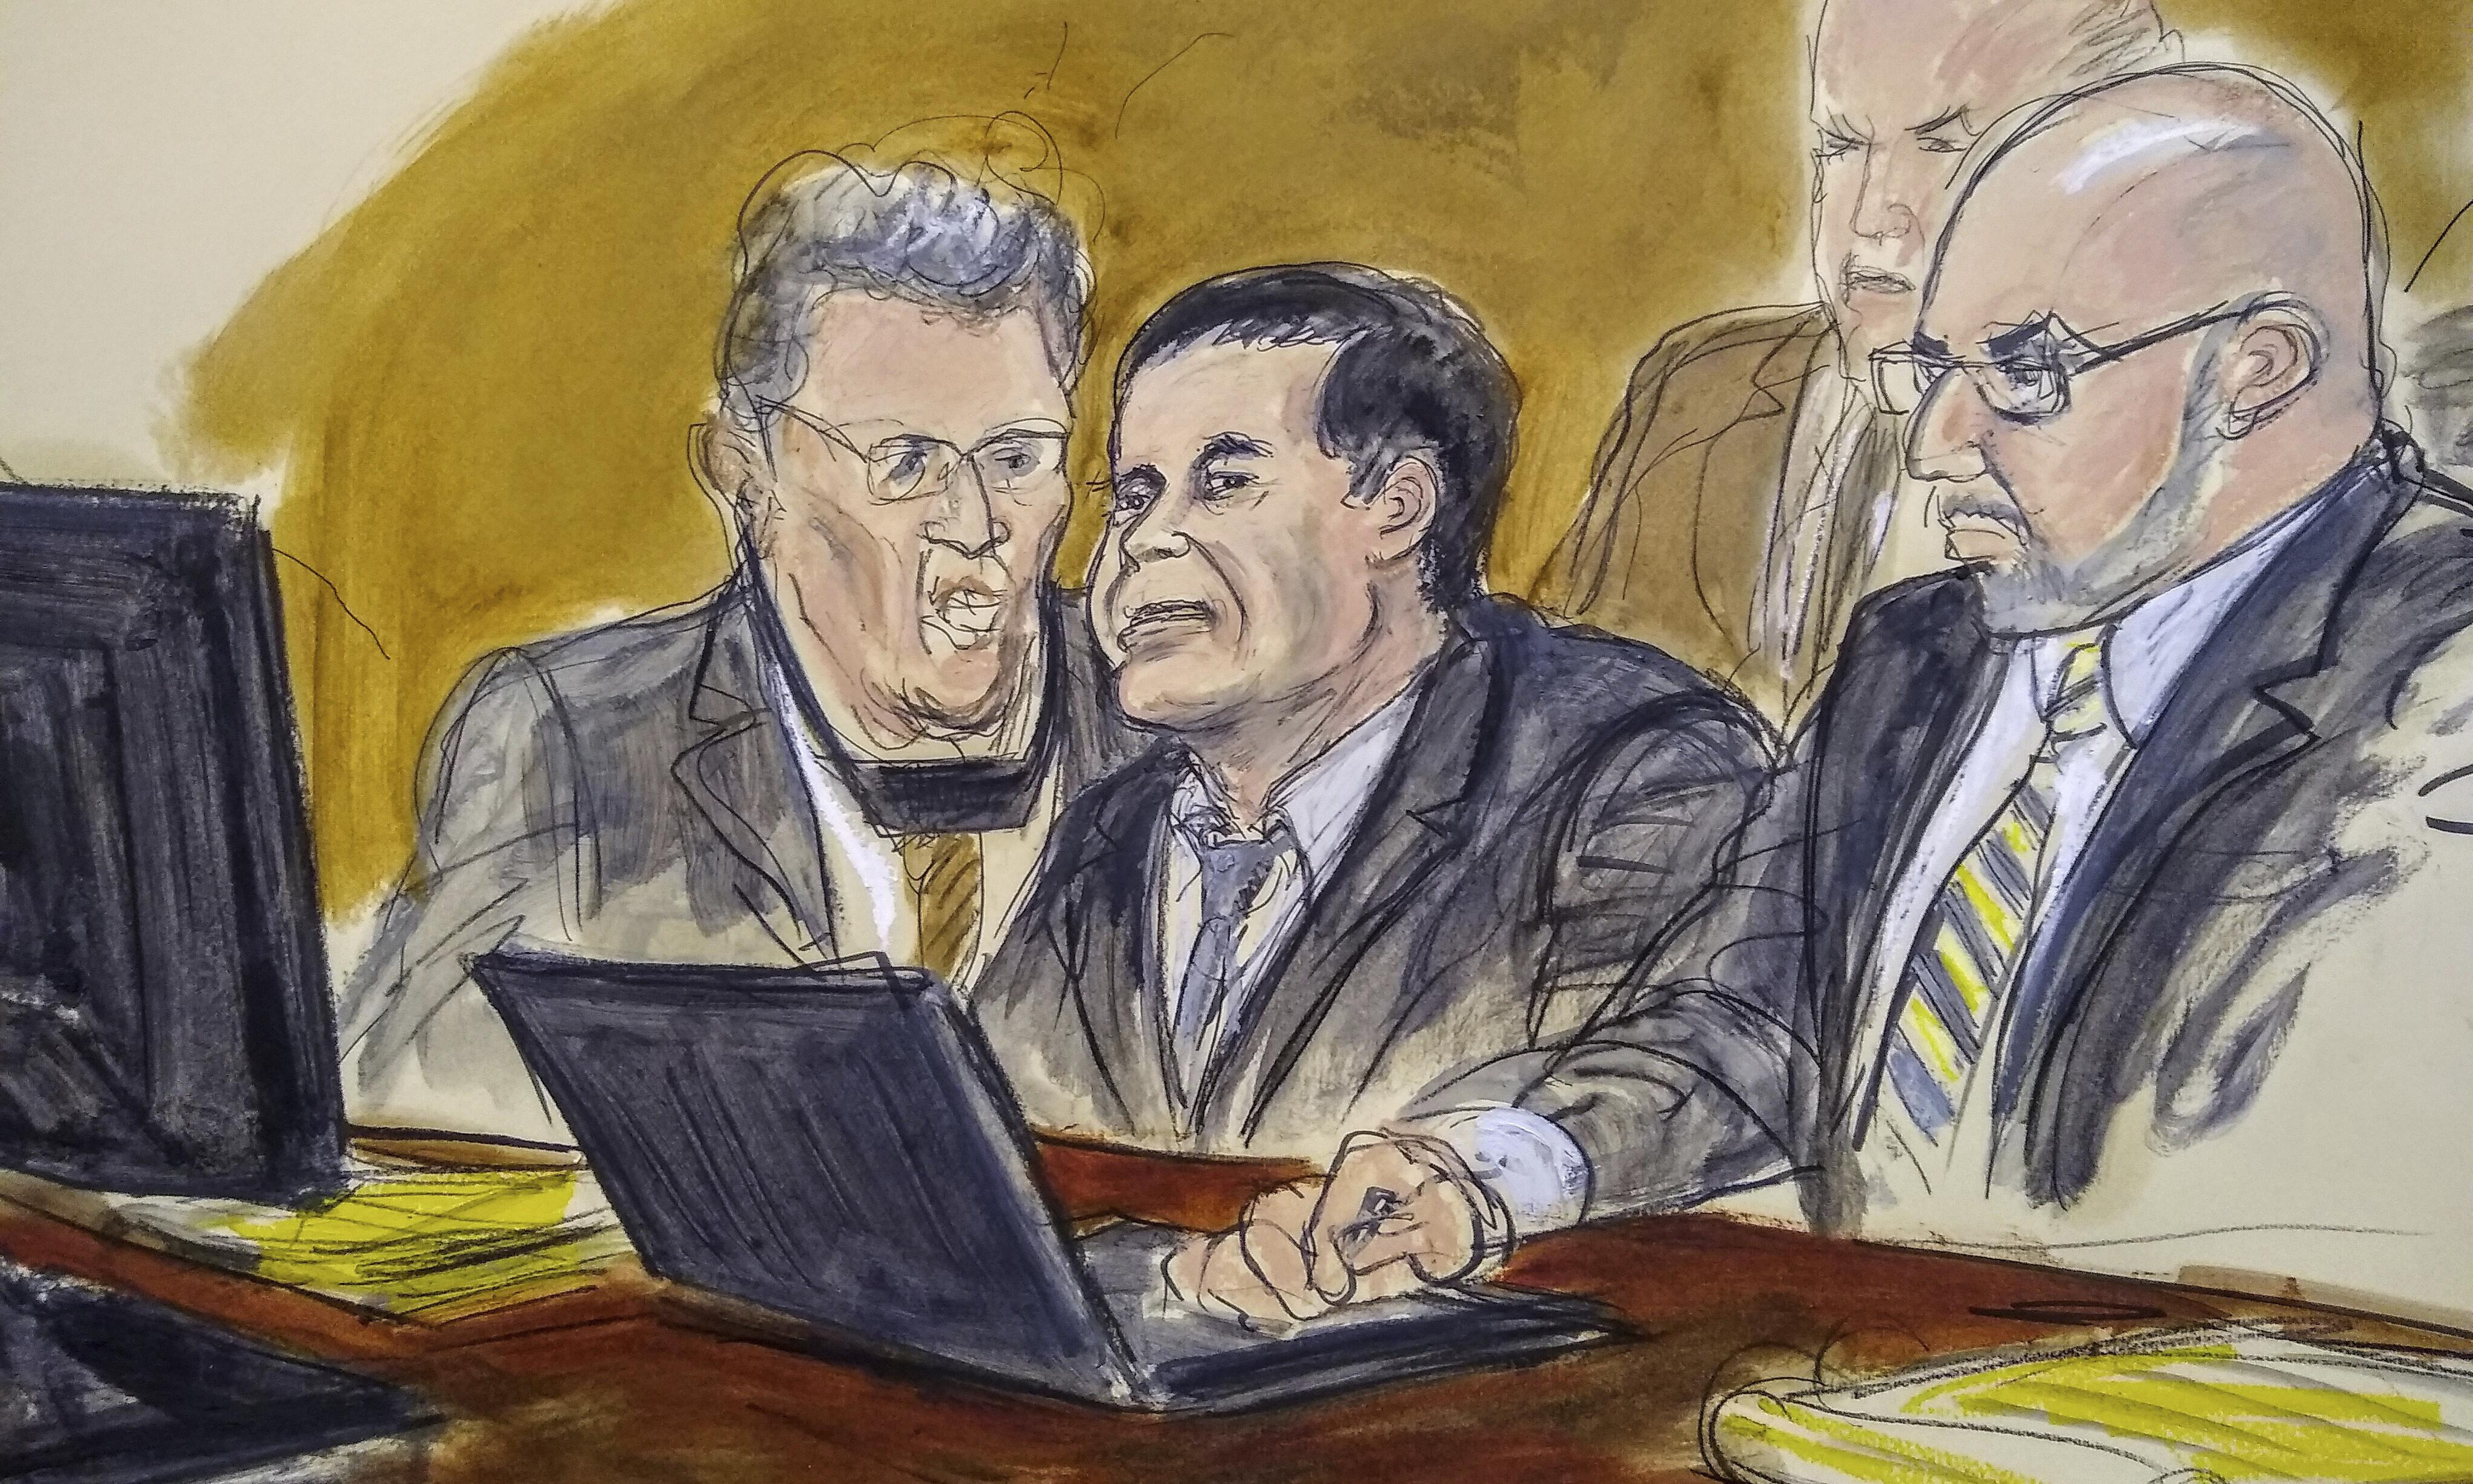 El Chapo's lawyers request new trial after report of juror misconduct